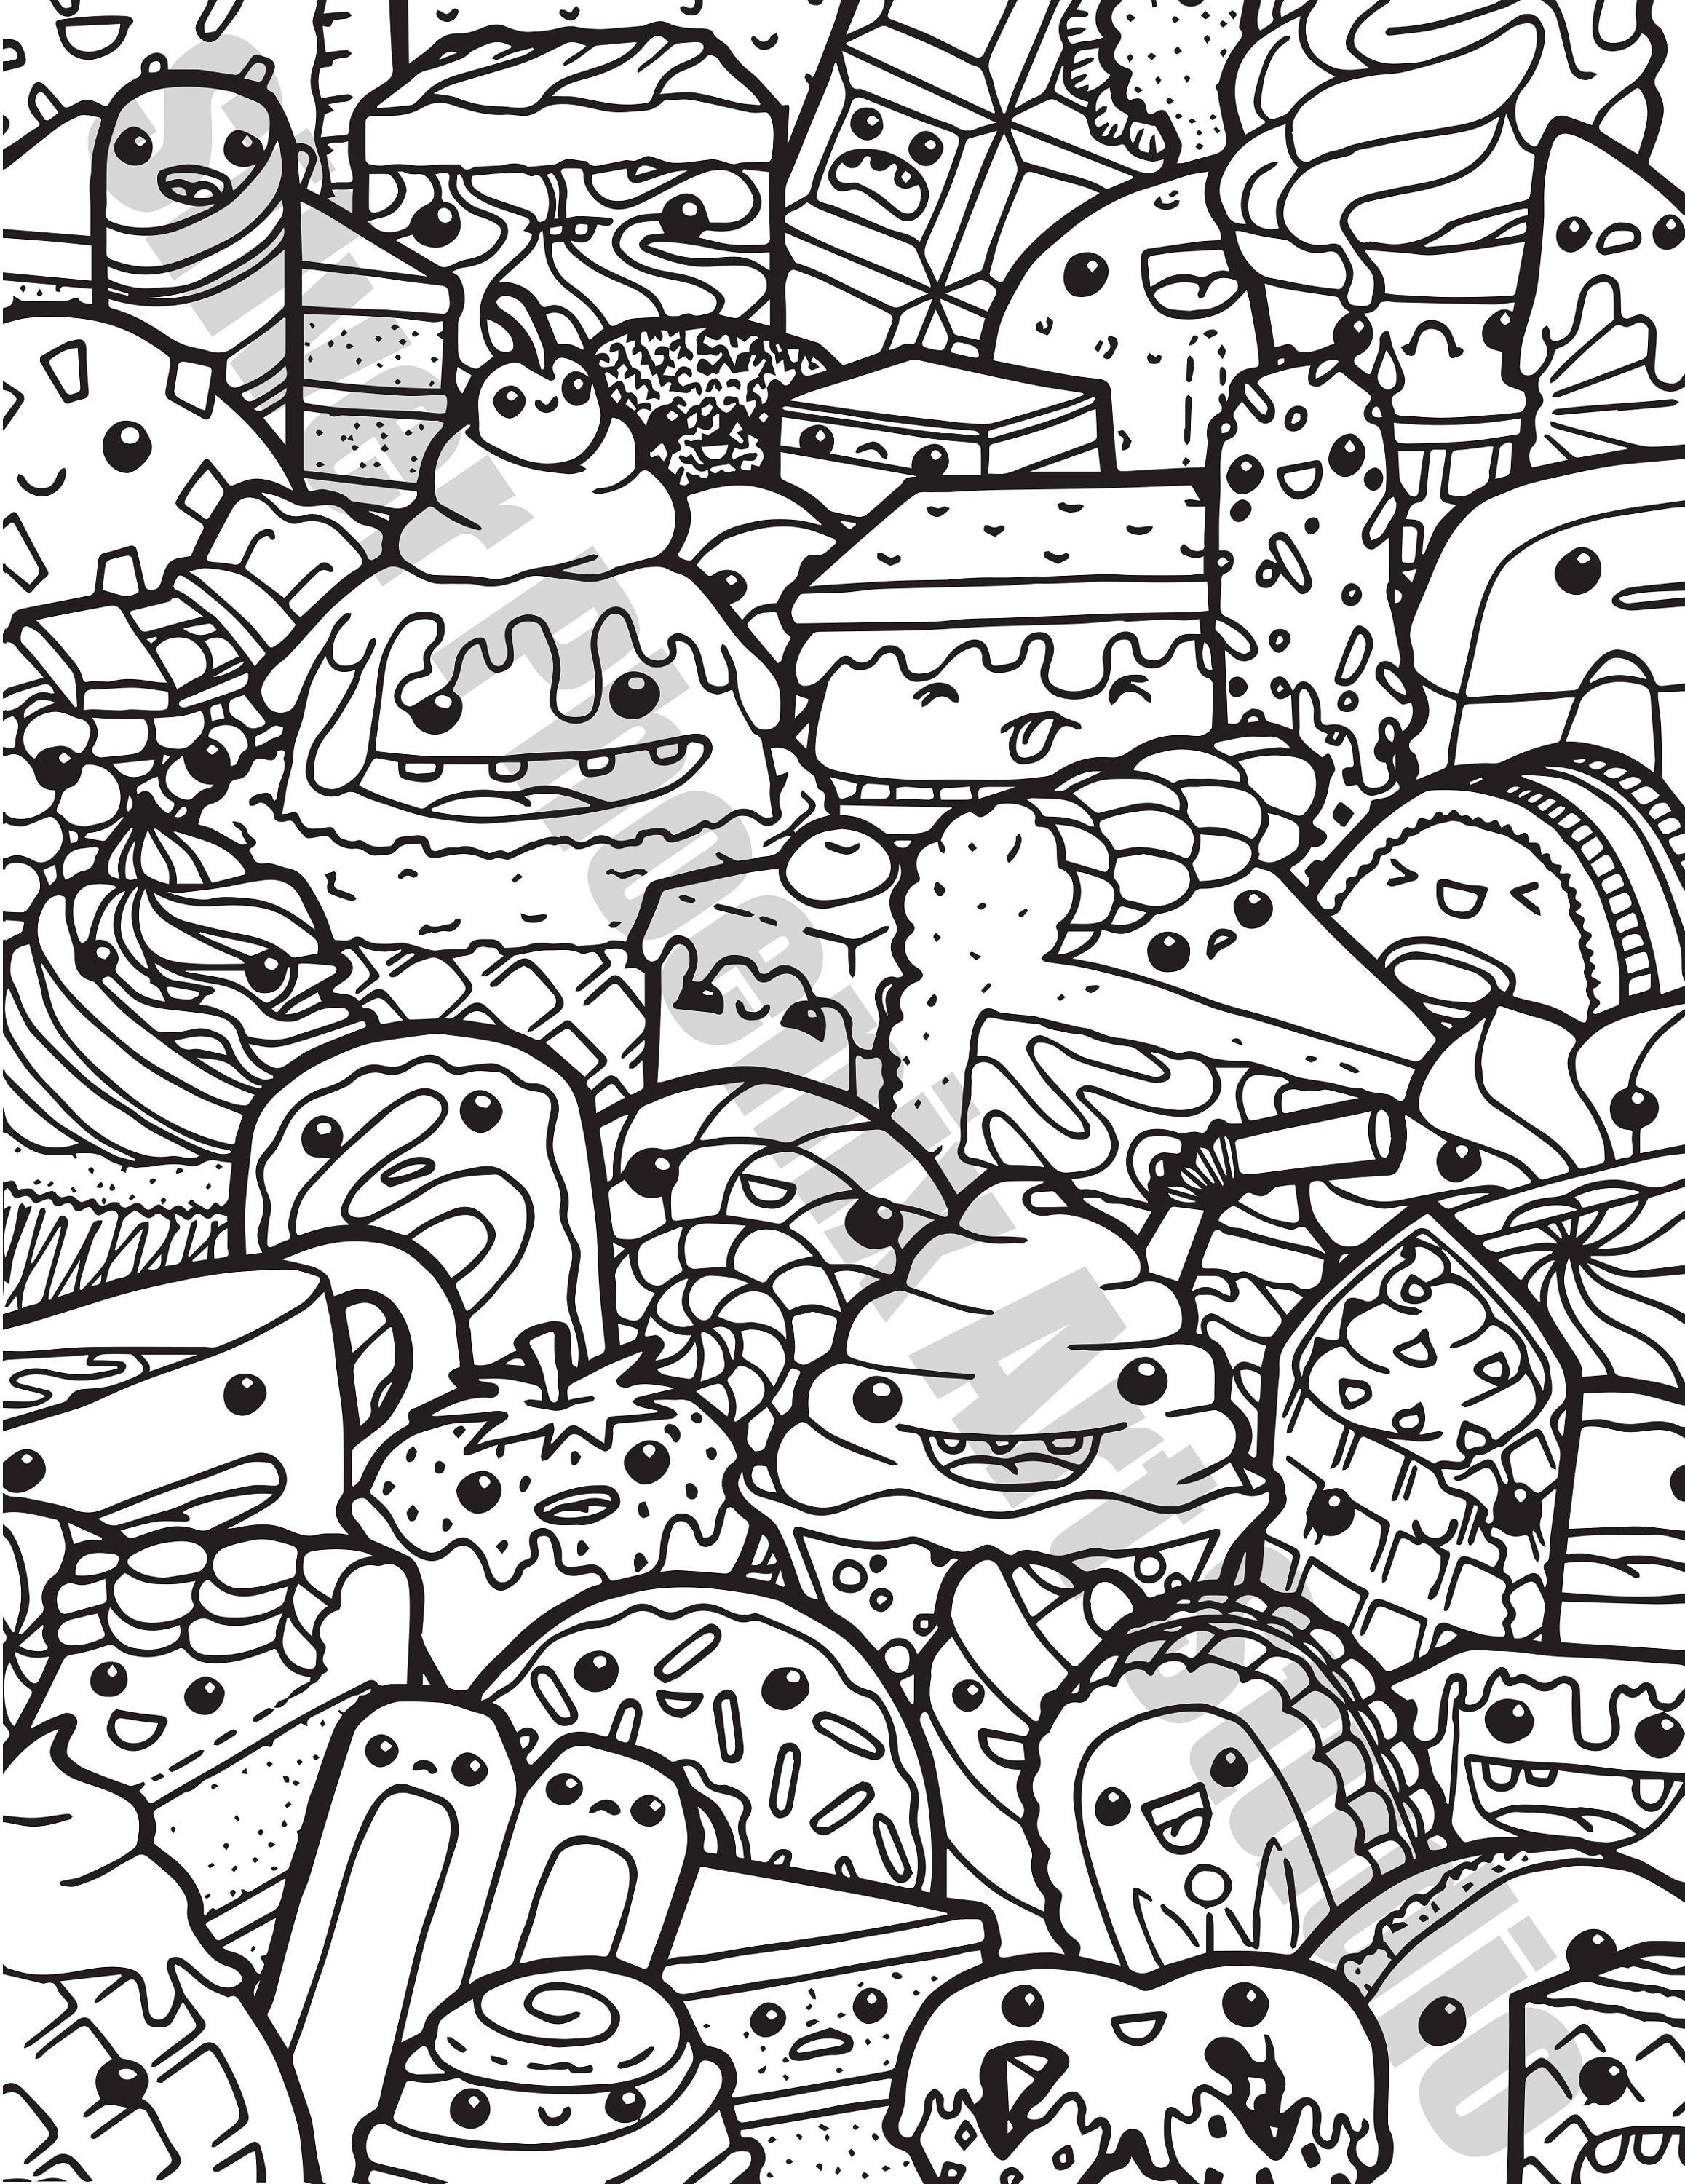 kawaii doodle coloring page printable digital